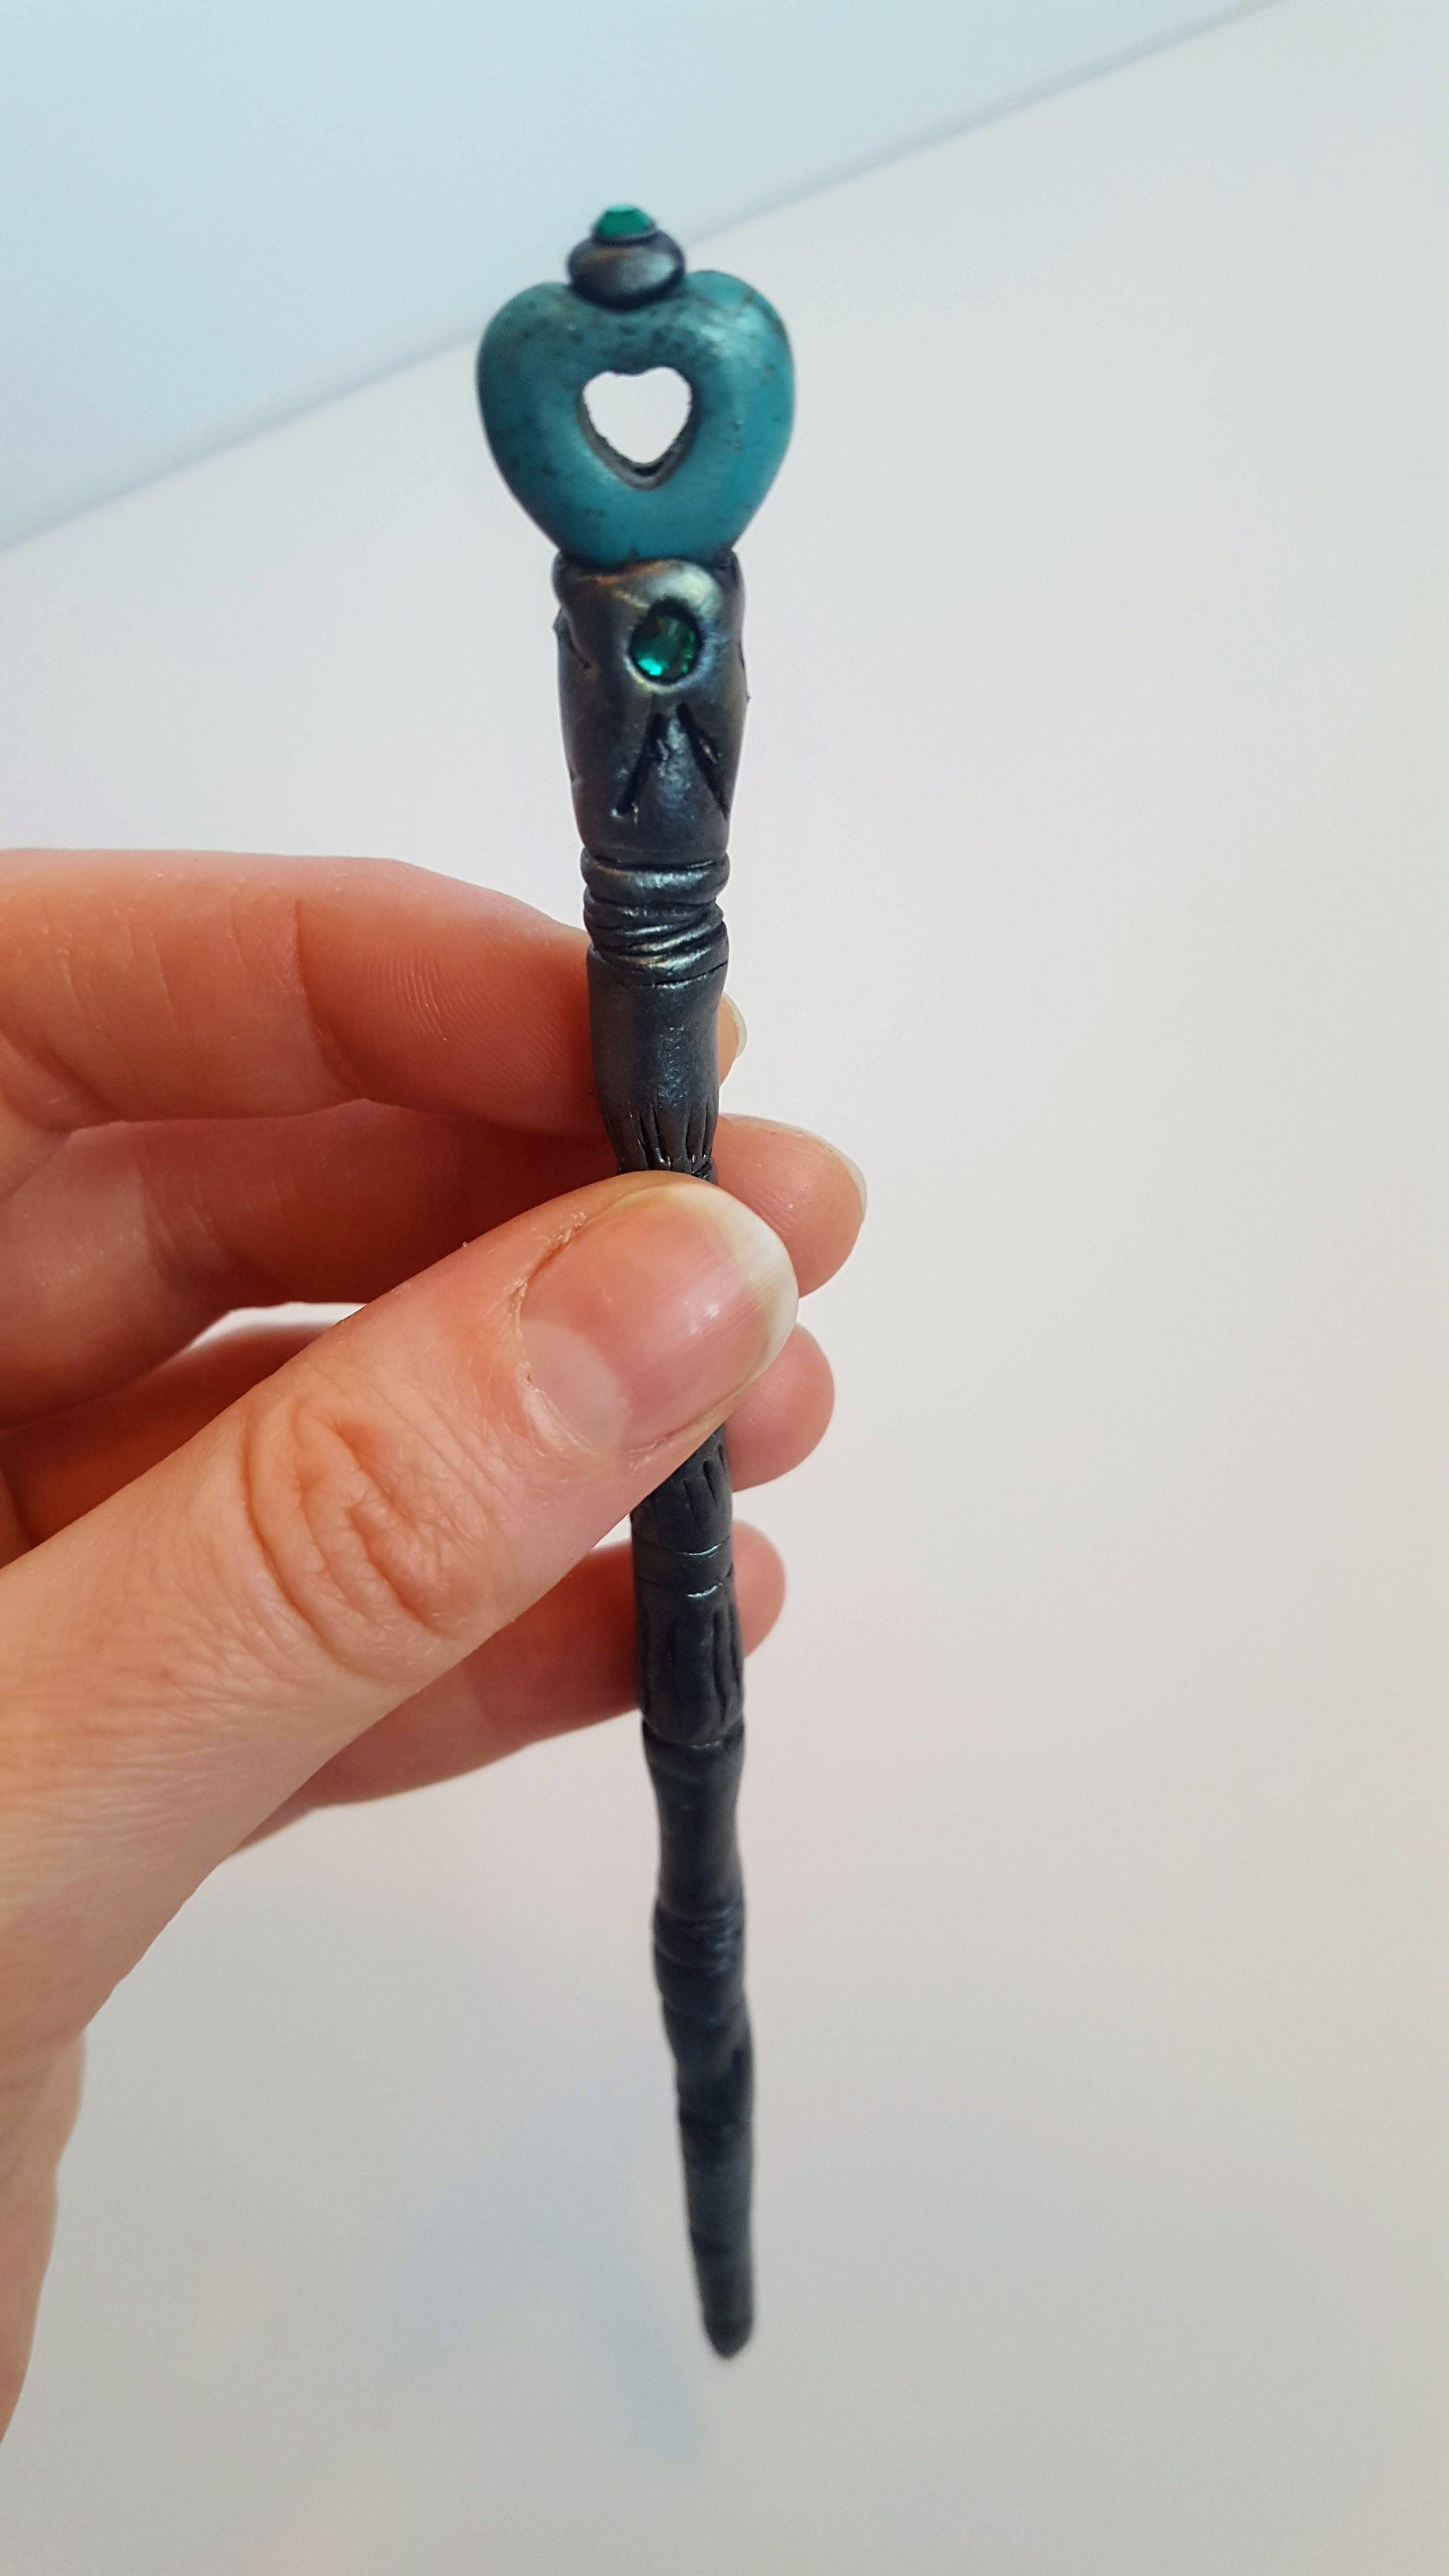 TurquoiseSmall Wand - Buy Now!